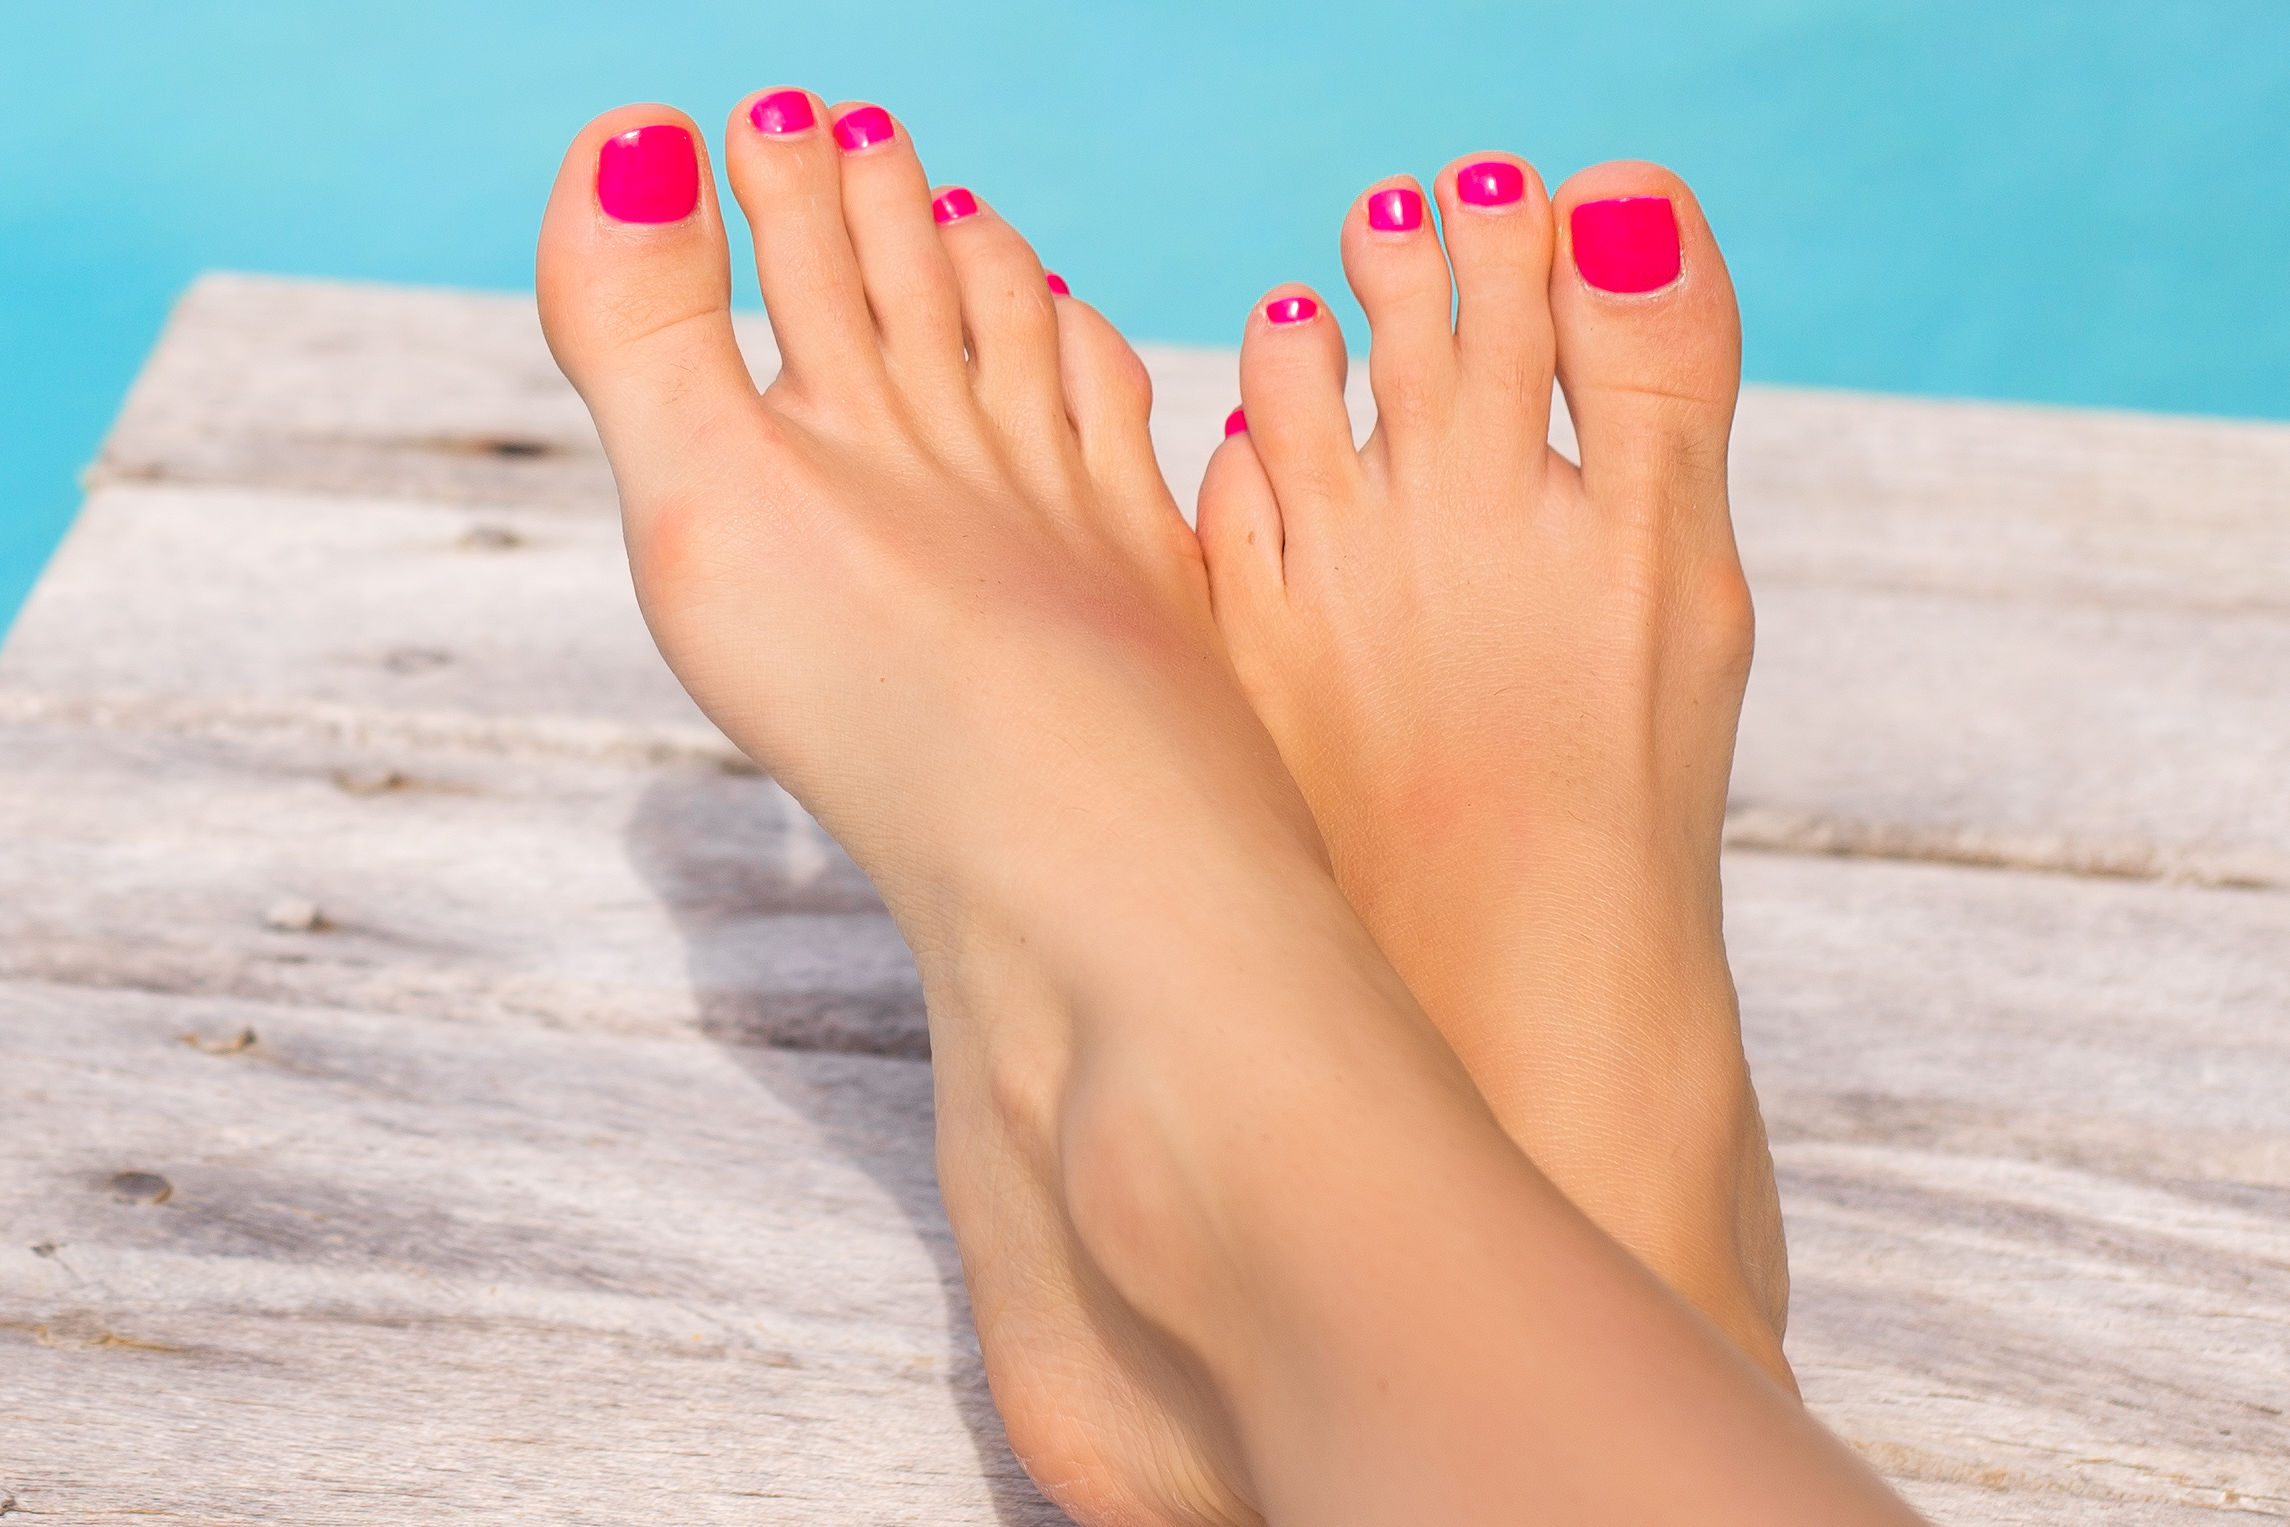 What Southern Women Really Think About Press-On Pedicures